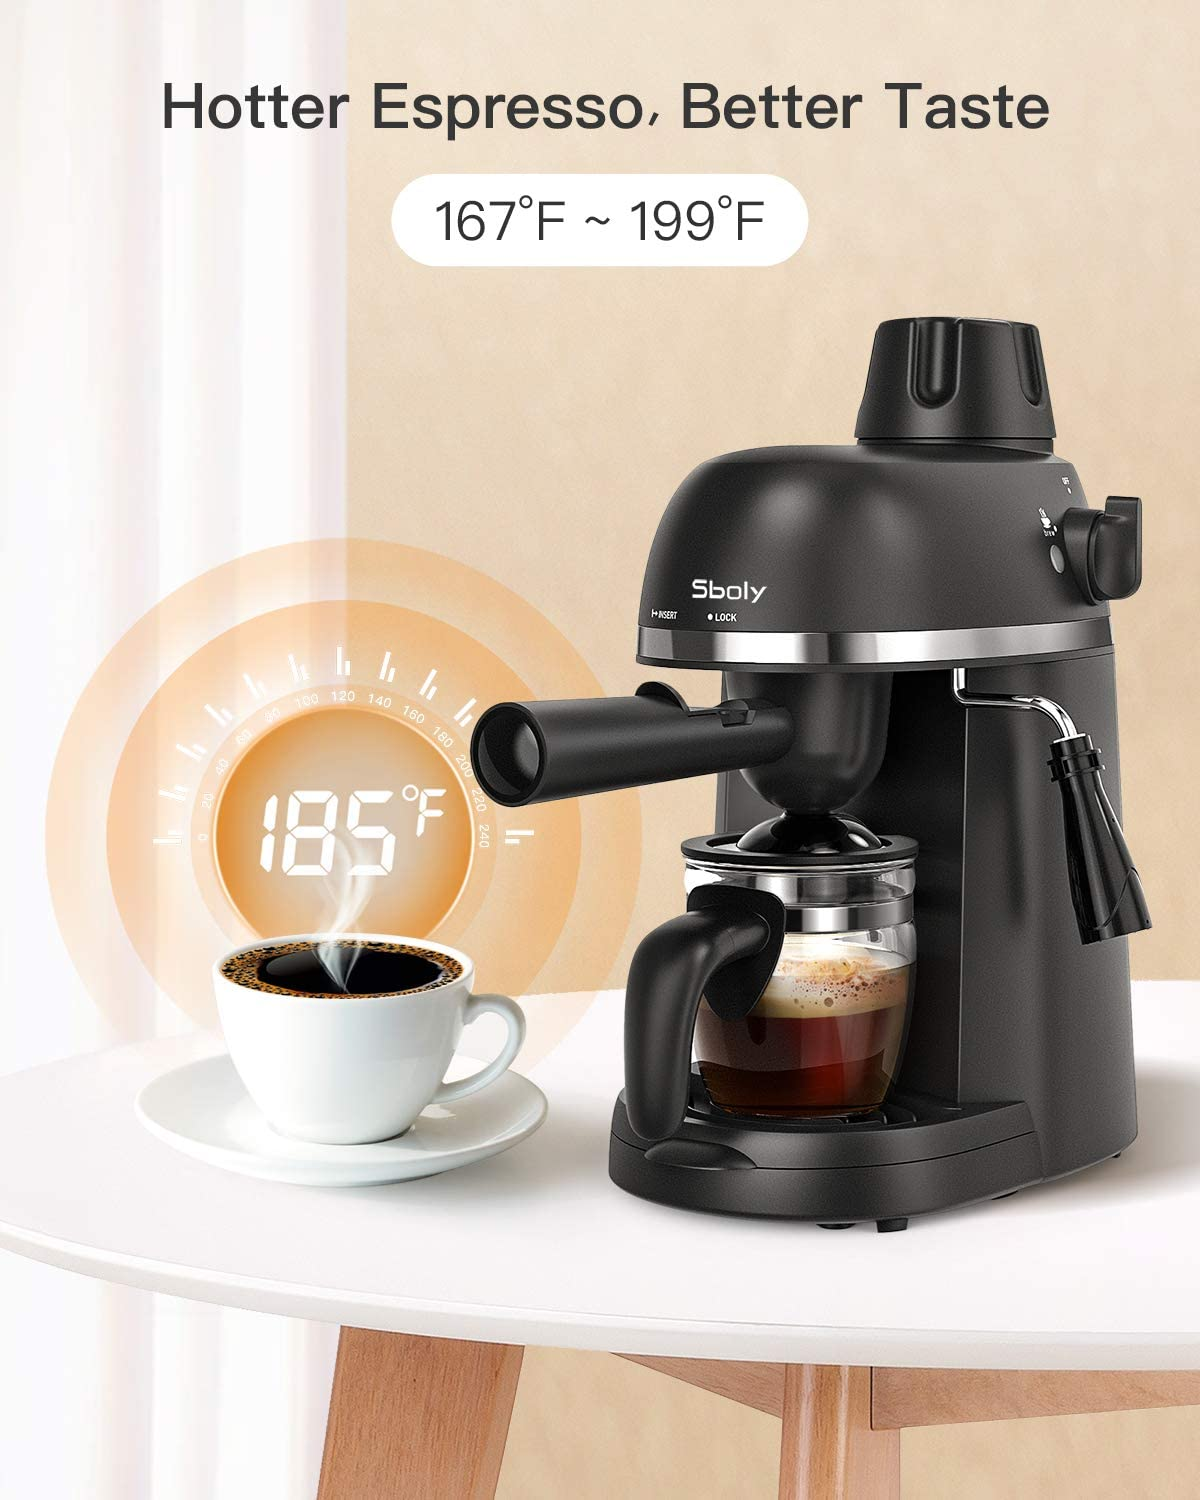 Sboly Espresso Machine with Milk Frother, 1-4 Cup Expresso Maker Latte Cappuccino Machine, Carafe included